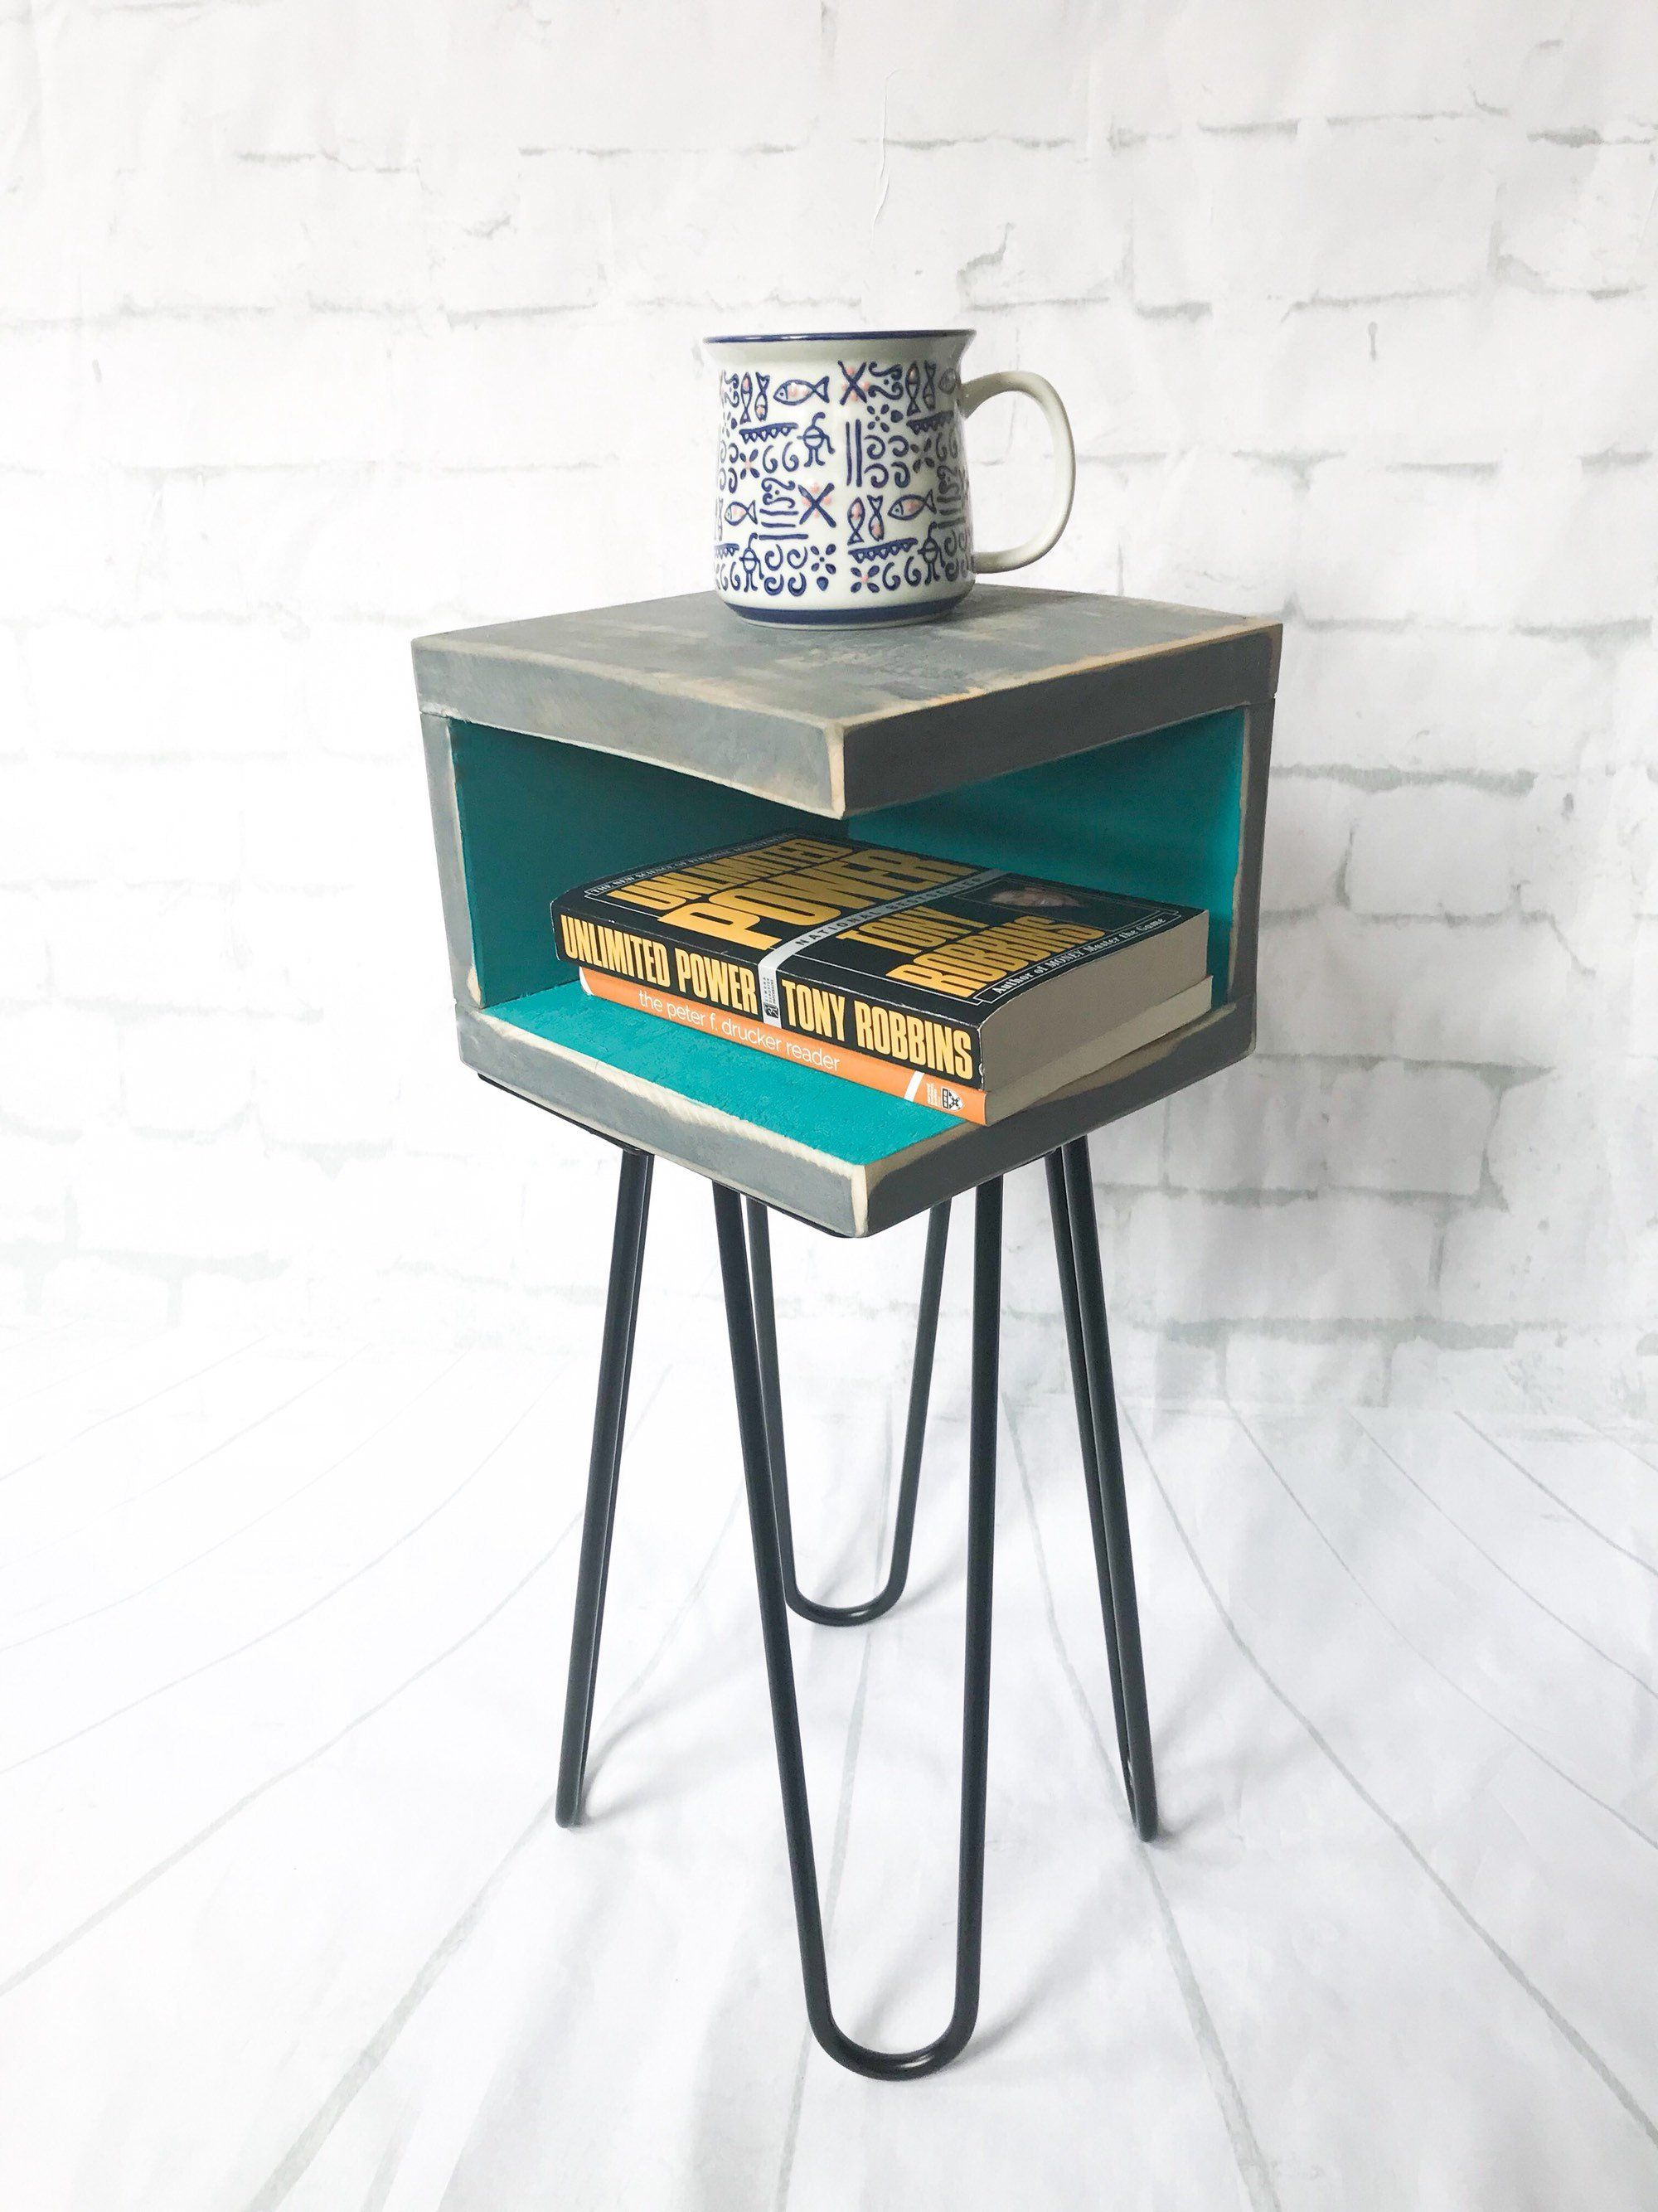 handmade nightstand modern mid century rustic retro small reclaimed wood accent tables furniture decor distressed end black and white geometric rug outdoor beach chrome coffee